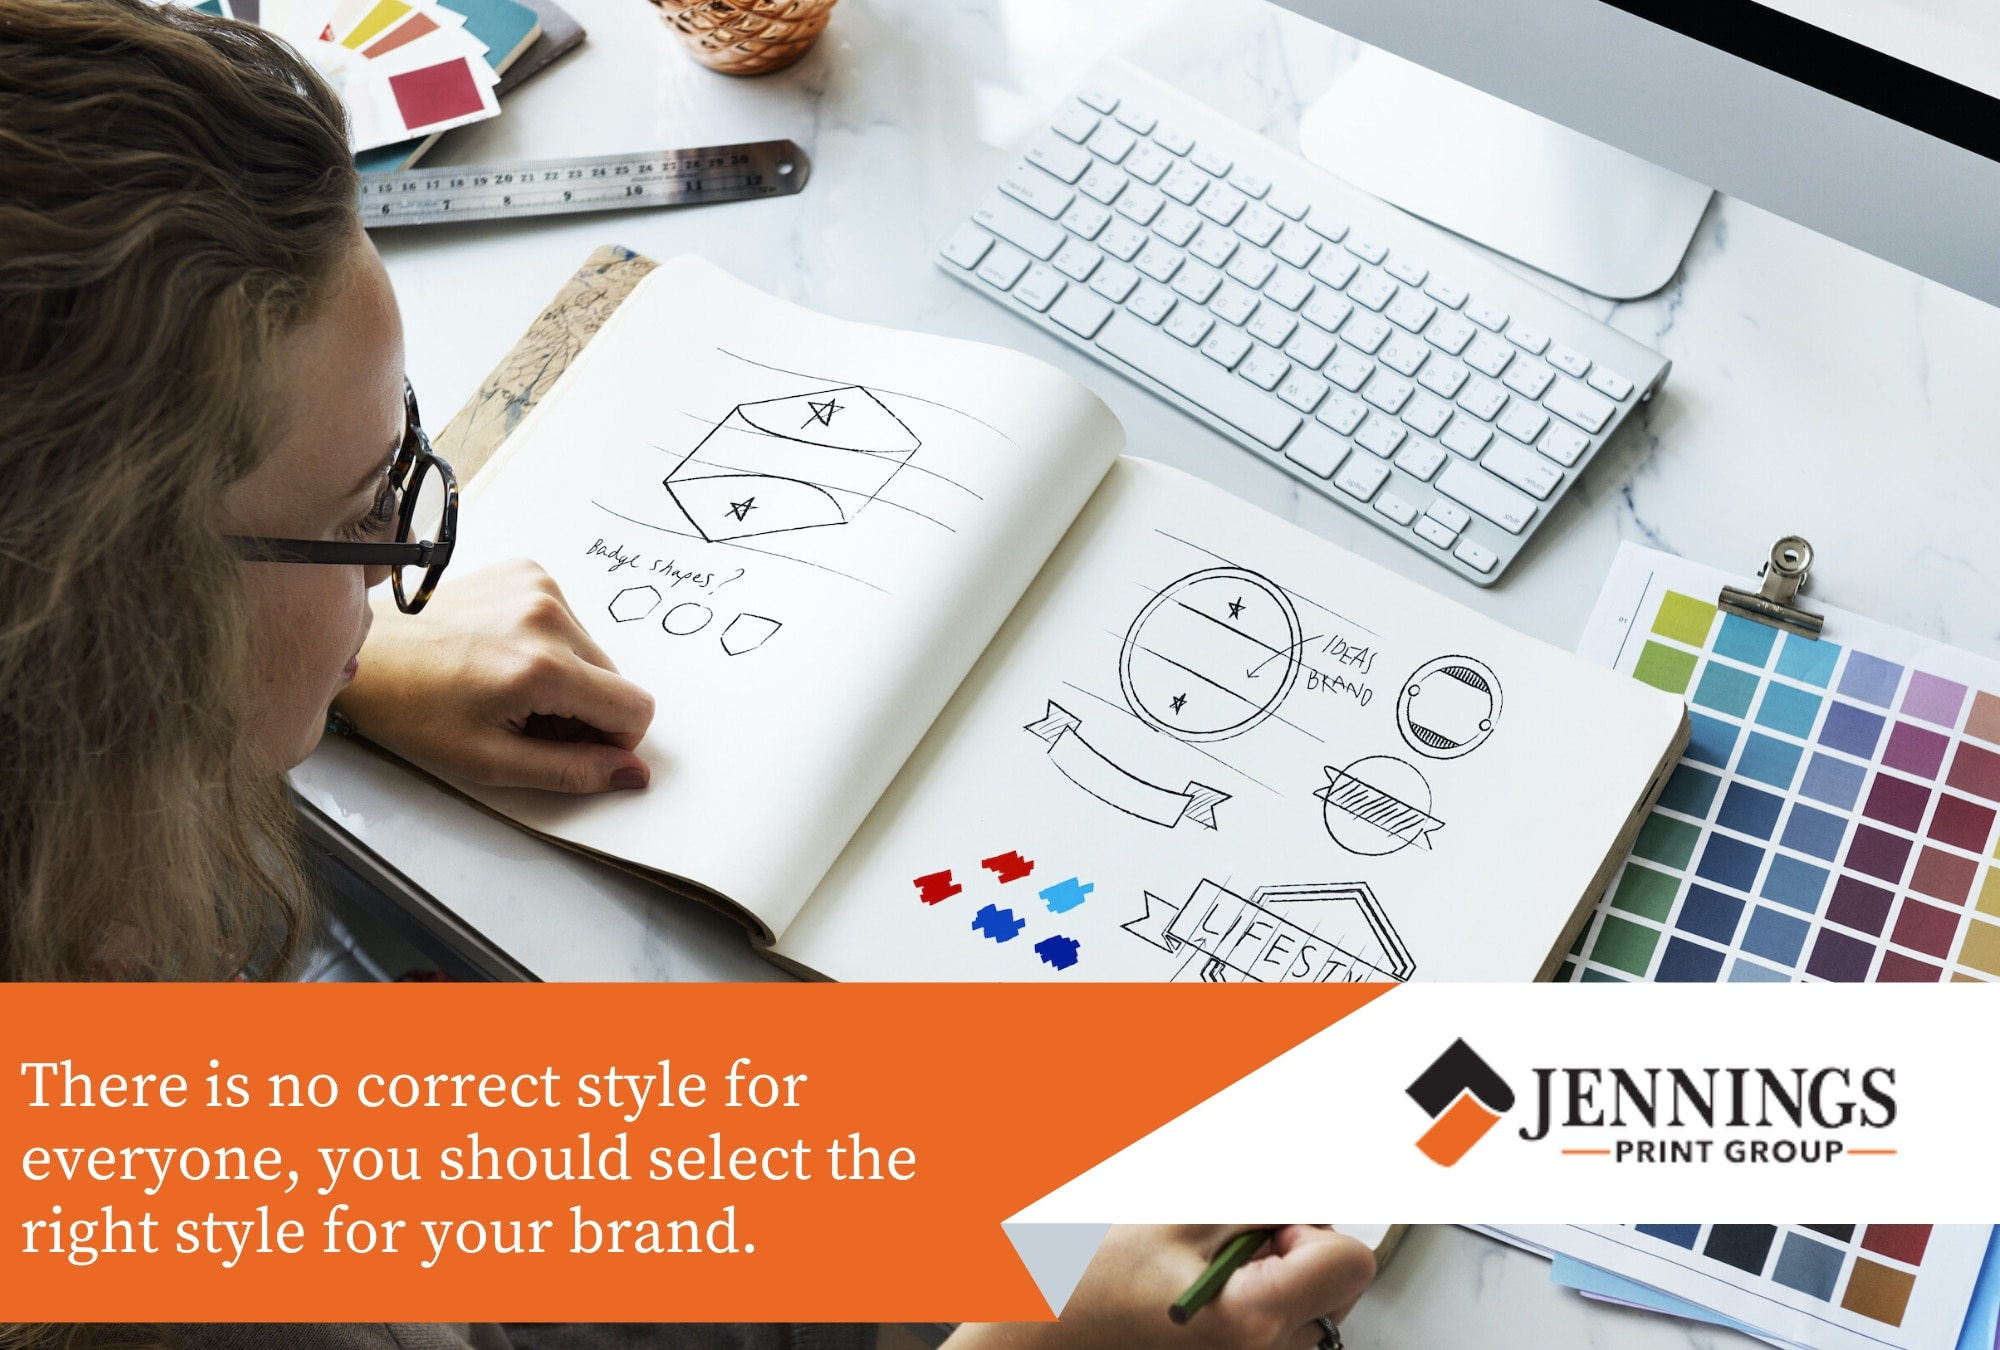 select the style for your brand